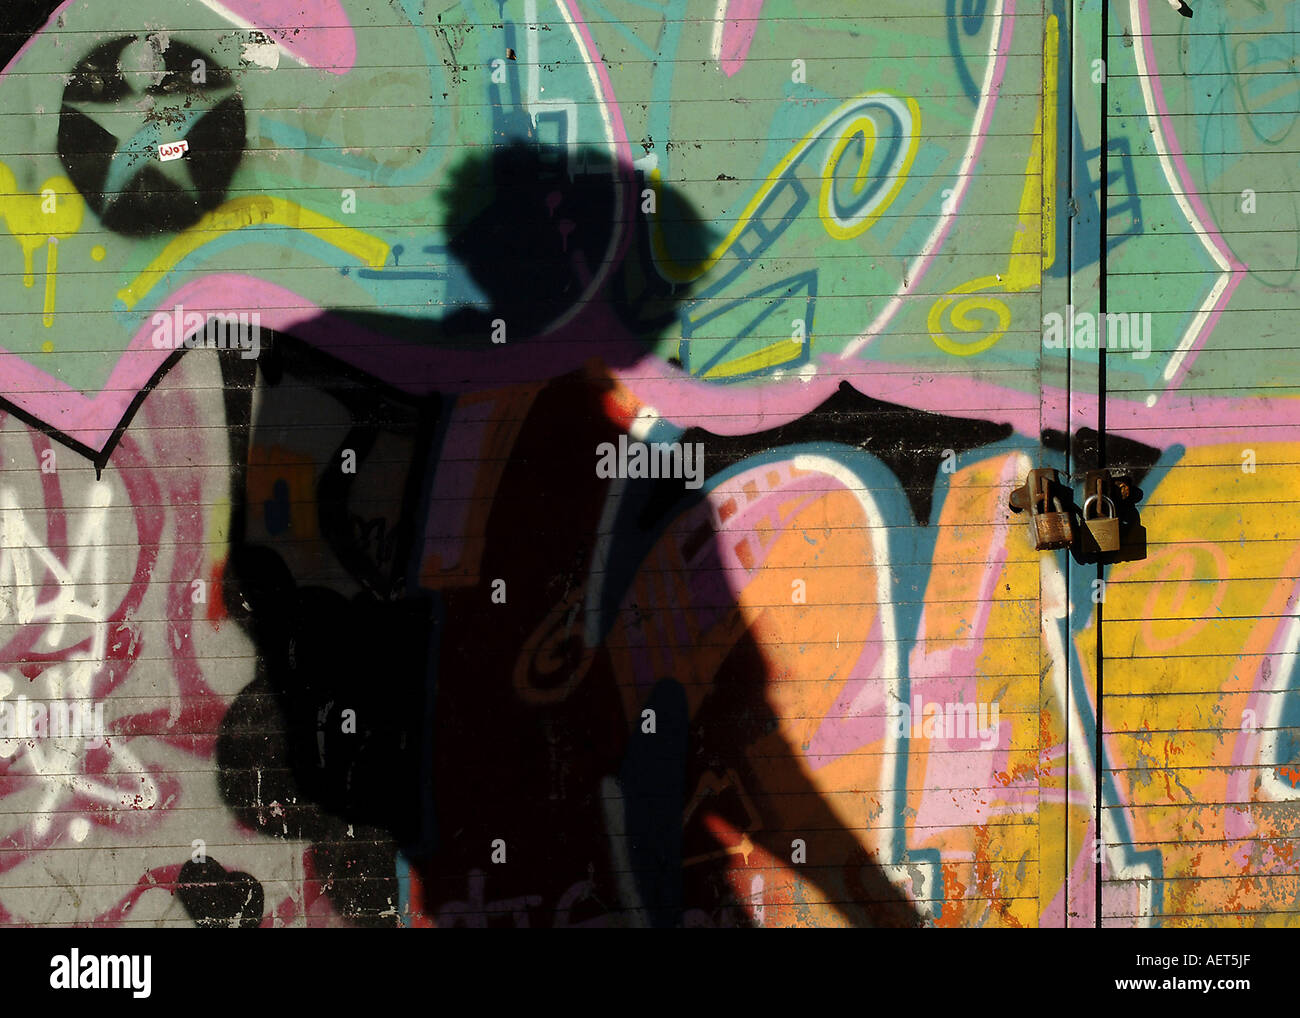 Pedestrians shadows refected against a graffitti background, Old Street, East london, UK - Stock Image